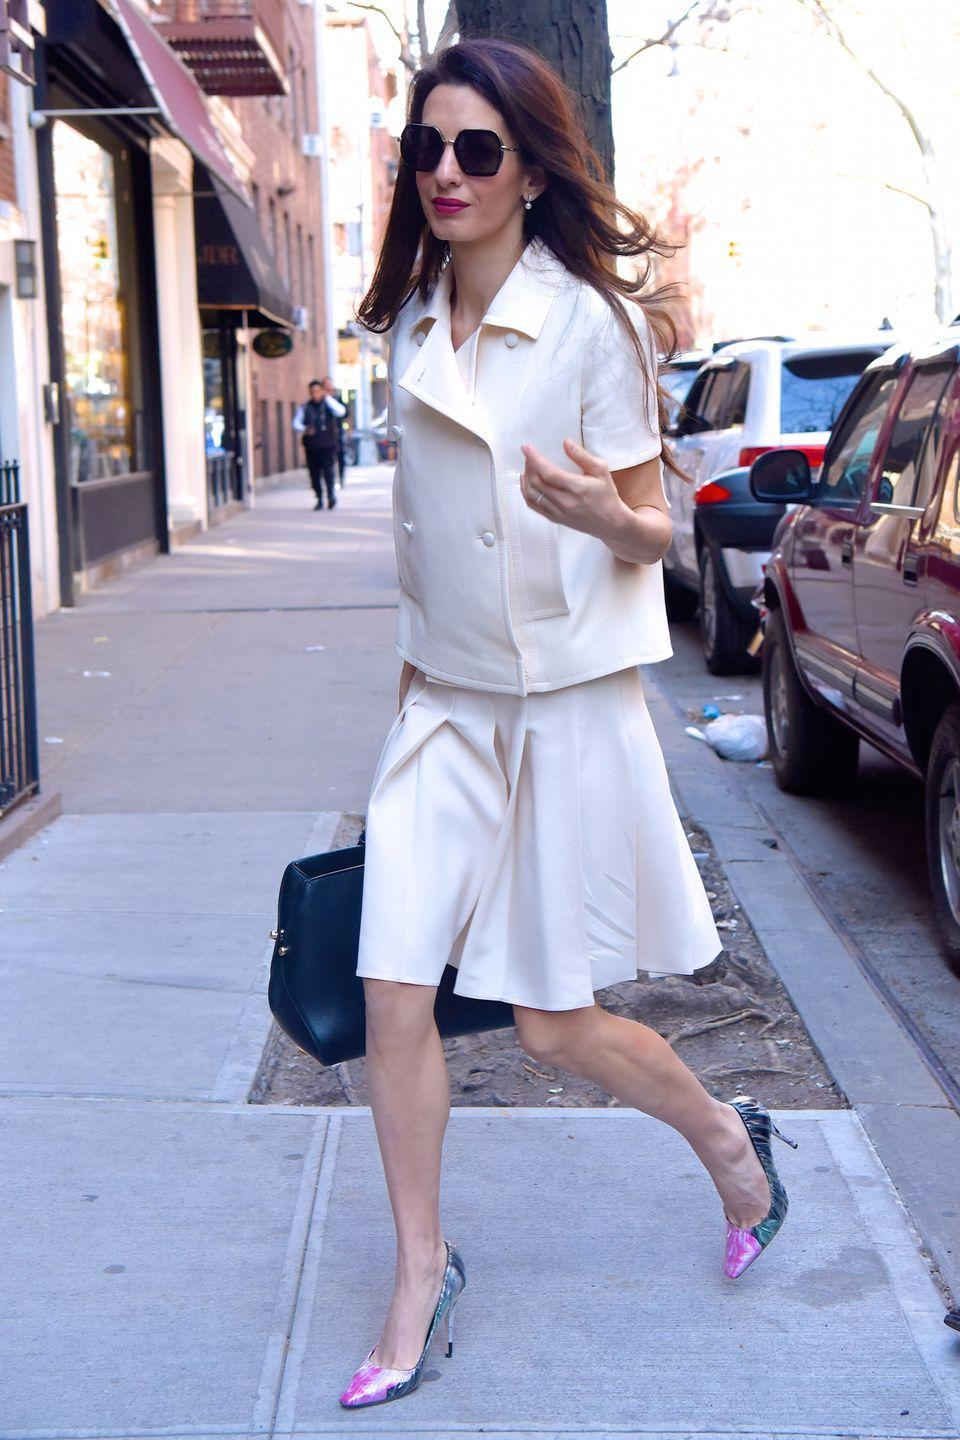 <p>For workwear conundrums, we always look to Amal Clooney. Here, she is expertly demonstrating how to make the skirt suit work for the office. Opt for light colours and accessorise with sunglasses and floral prints.</p>